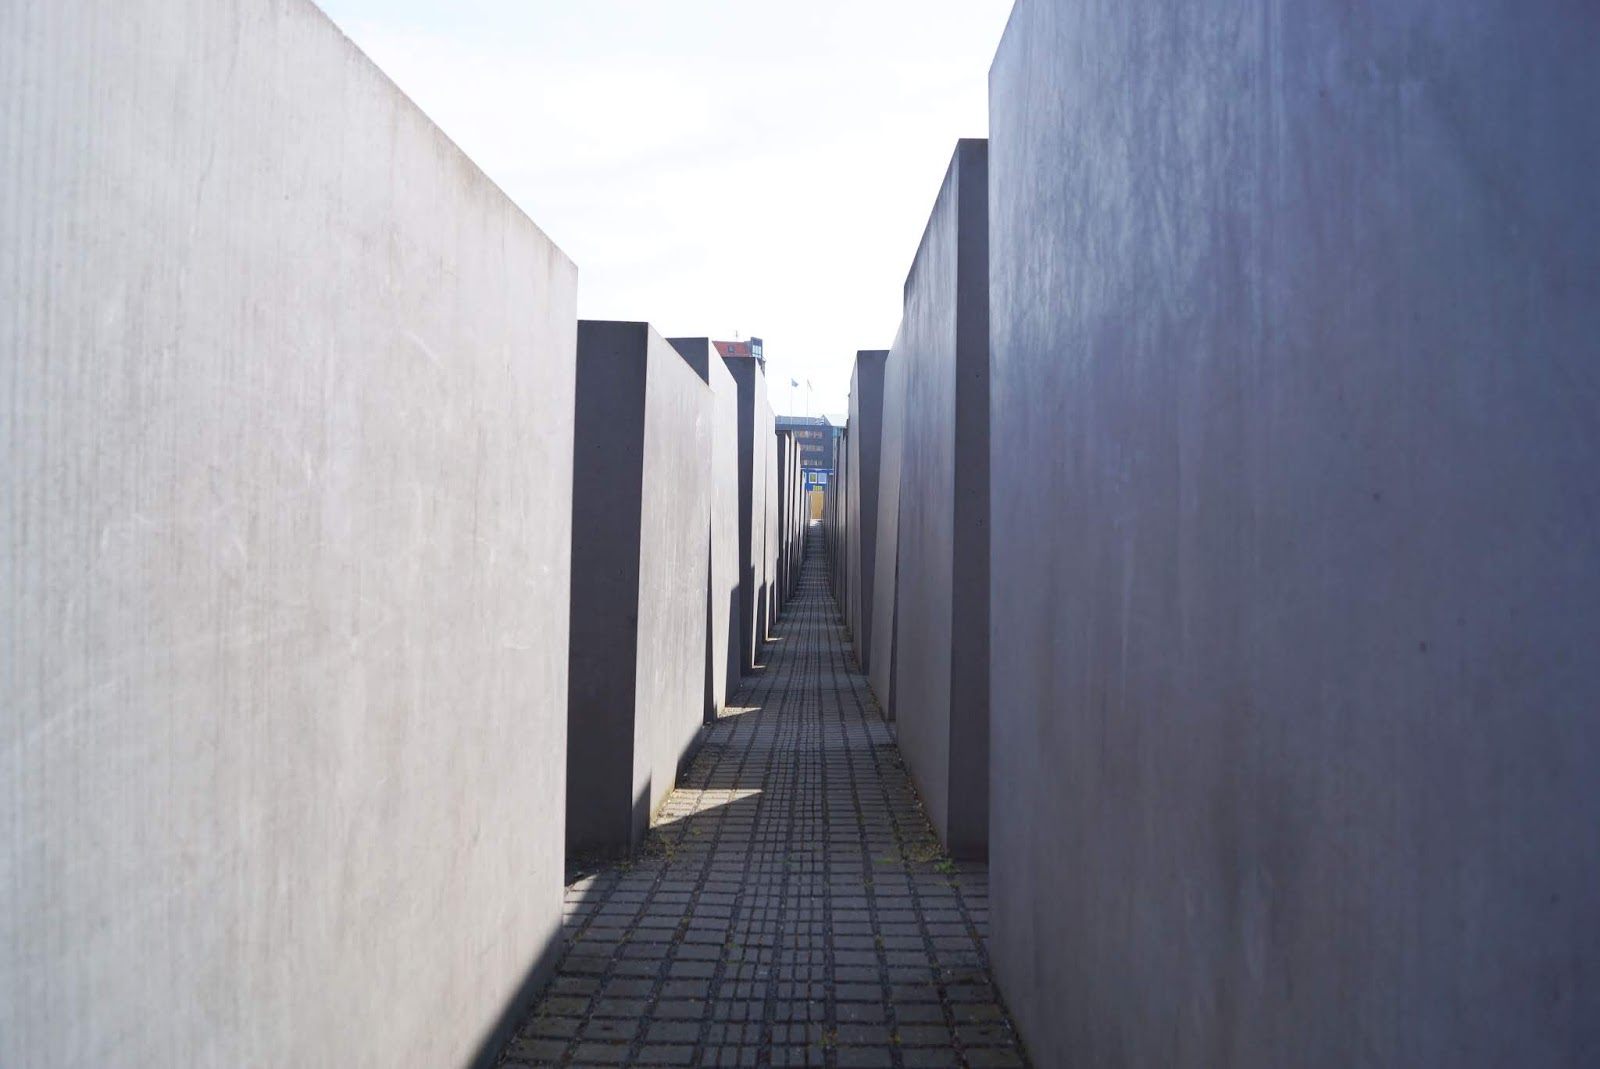 memorial_to_murdered_jews_of_europe